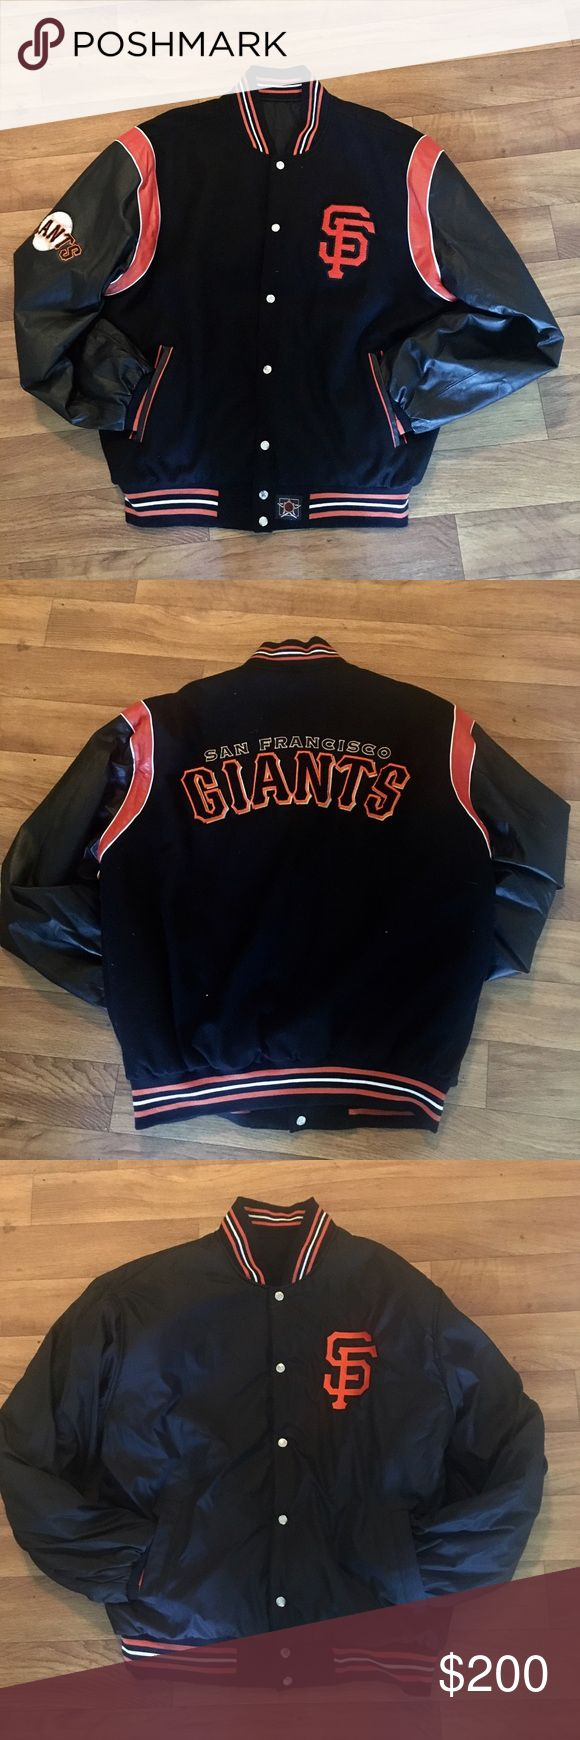 San Francisco Giants Varsity Jacket Who's ready for a trip to AT&T Park for a game?! This men's leather and polyester REVERSIBLE varsity jacket is in perfect condition! Originally purchased for $300 at Wilson's Leather. The Brand is JH Design by Wilsons Leather. Features a patch on one leather sleeve as well as a logo on each side of the jacket. Make this jacket yours today! Perfect for Father's Day just around the corner! Wilsons Leather Jackets & Coats Bomber & Varsity